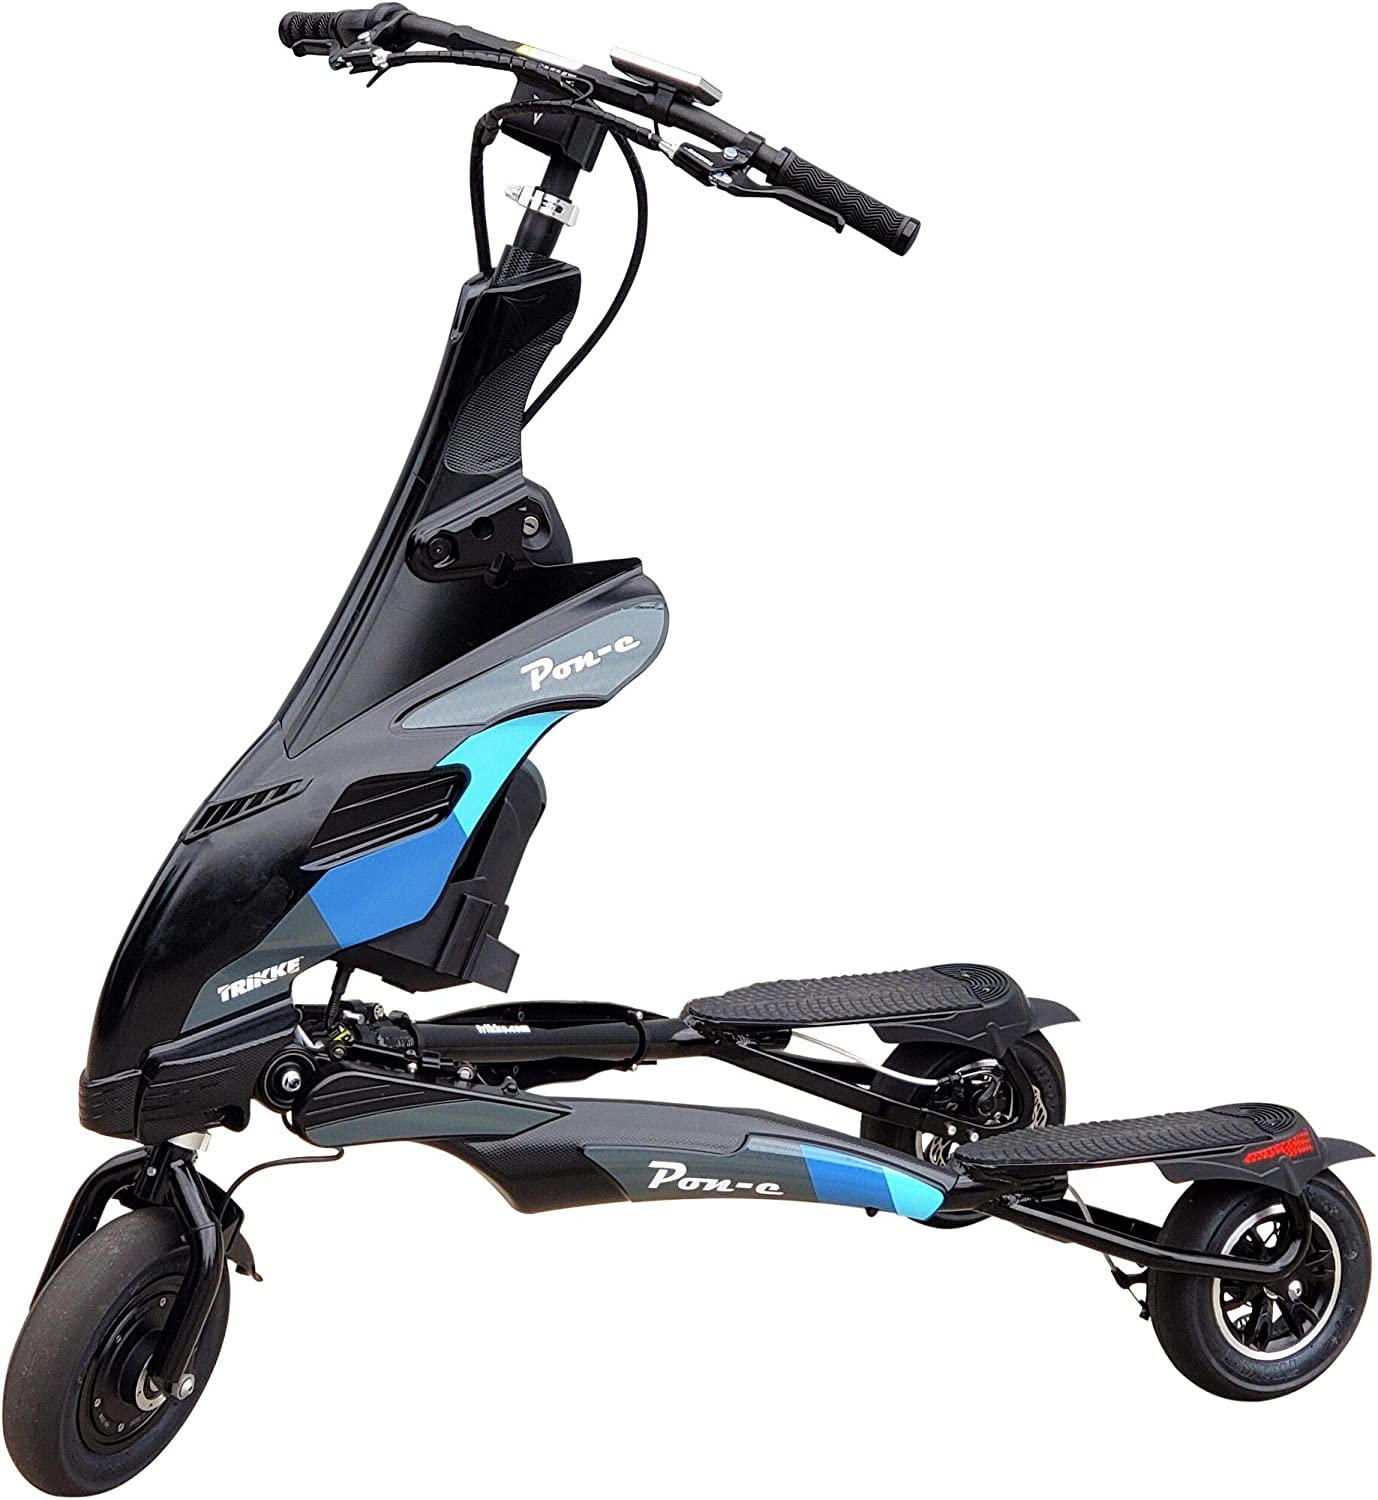 5 Best Electric Scooters In '2021' [Reviews & Guide] 10